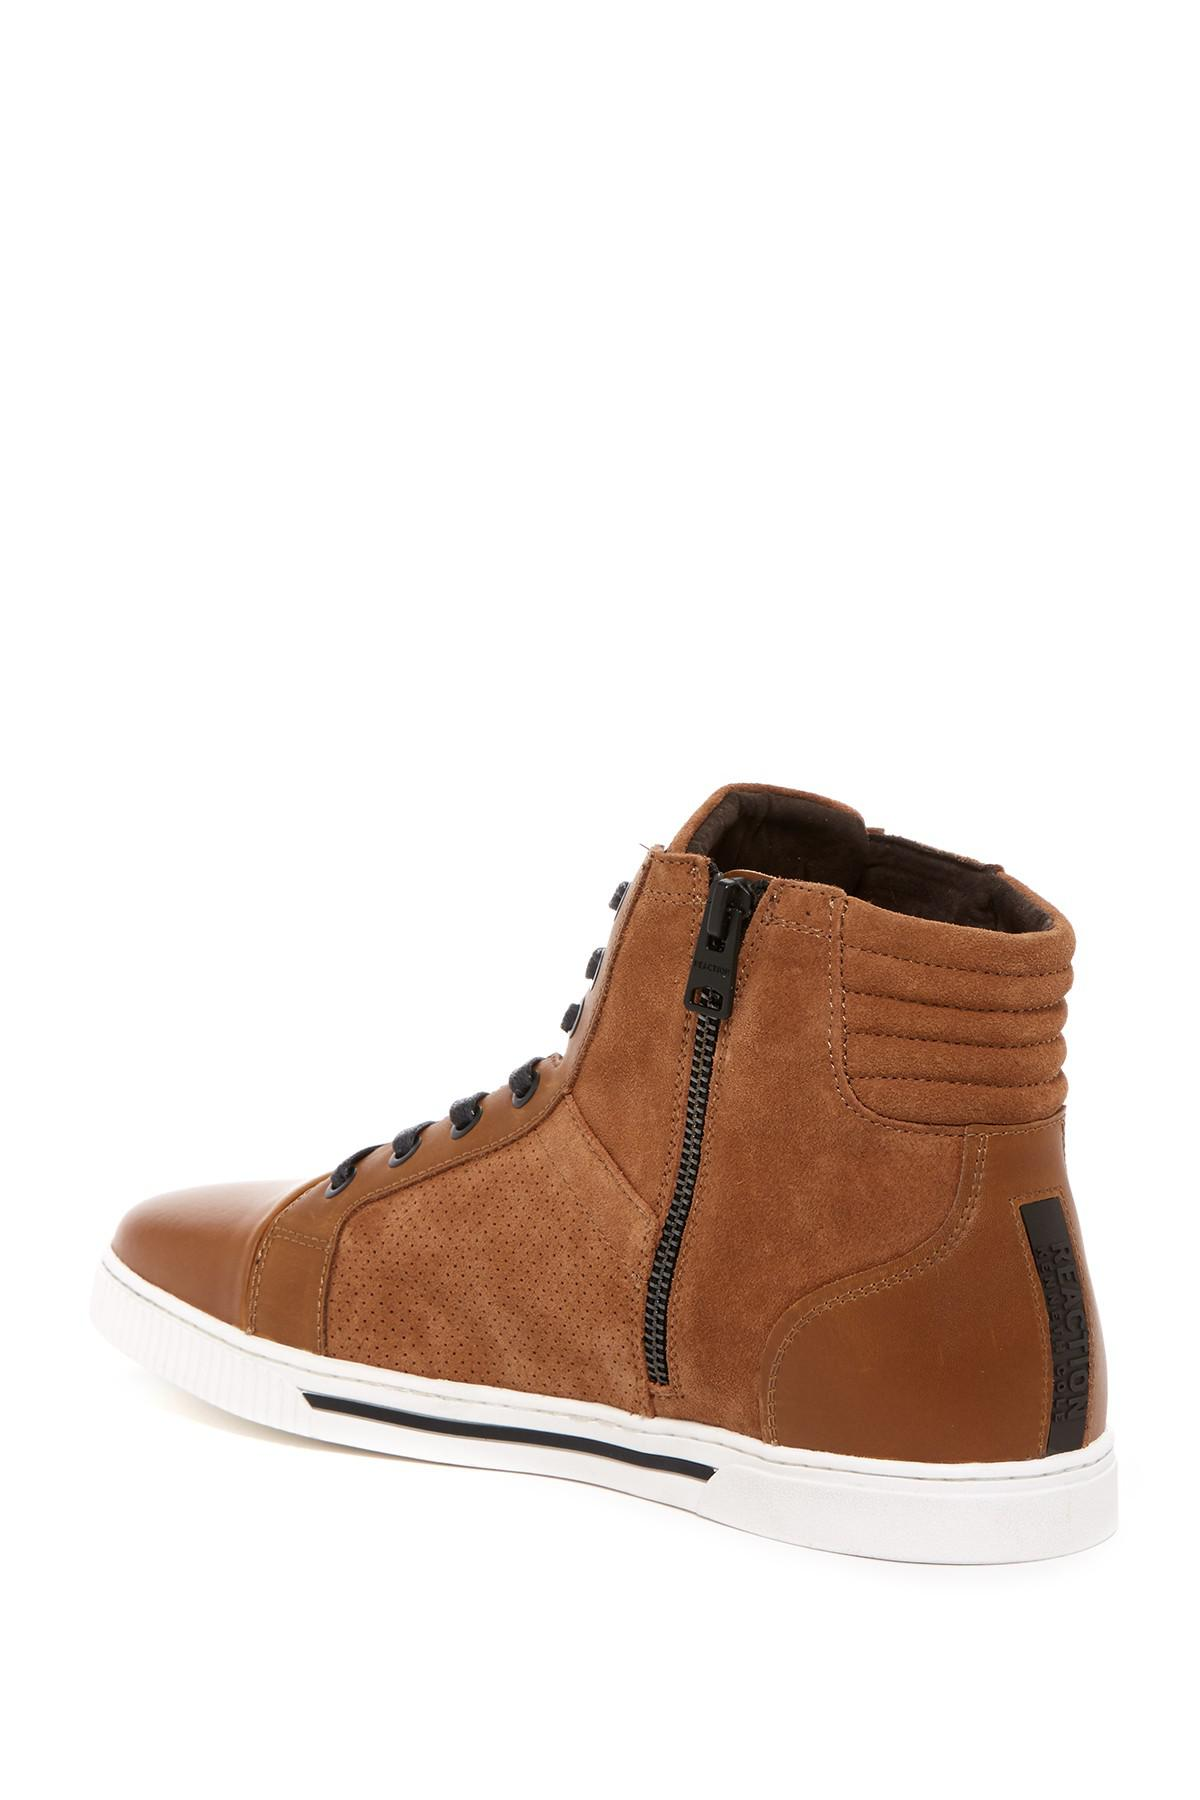 Kenneth Cole Reaction Fence Around High Top Sneaker HAiVp8z